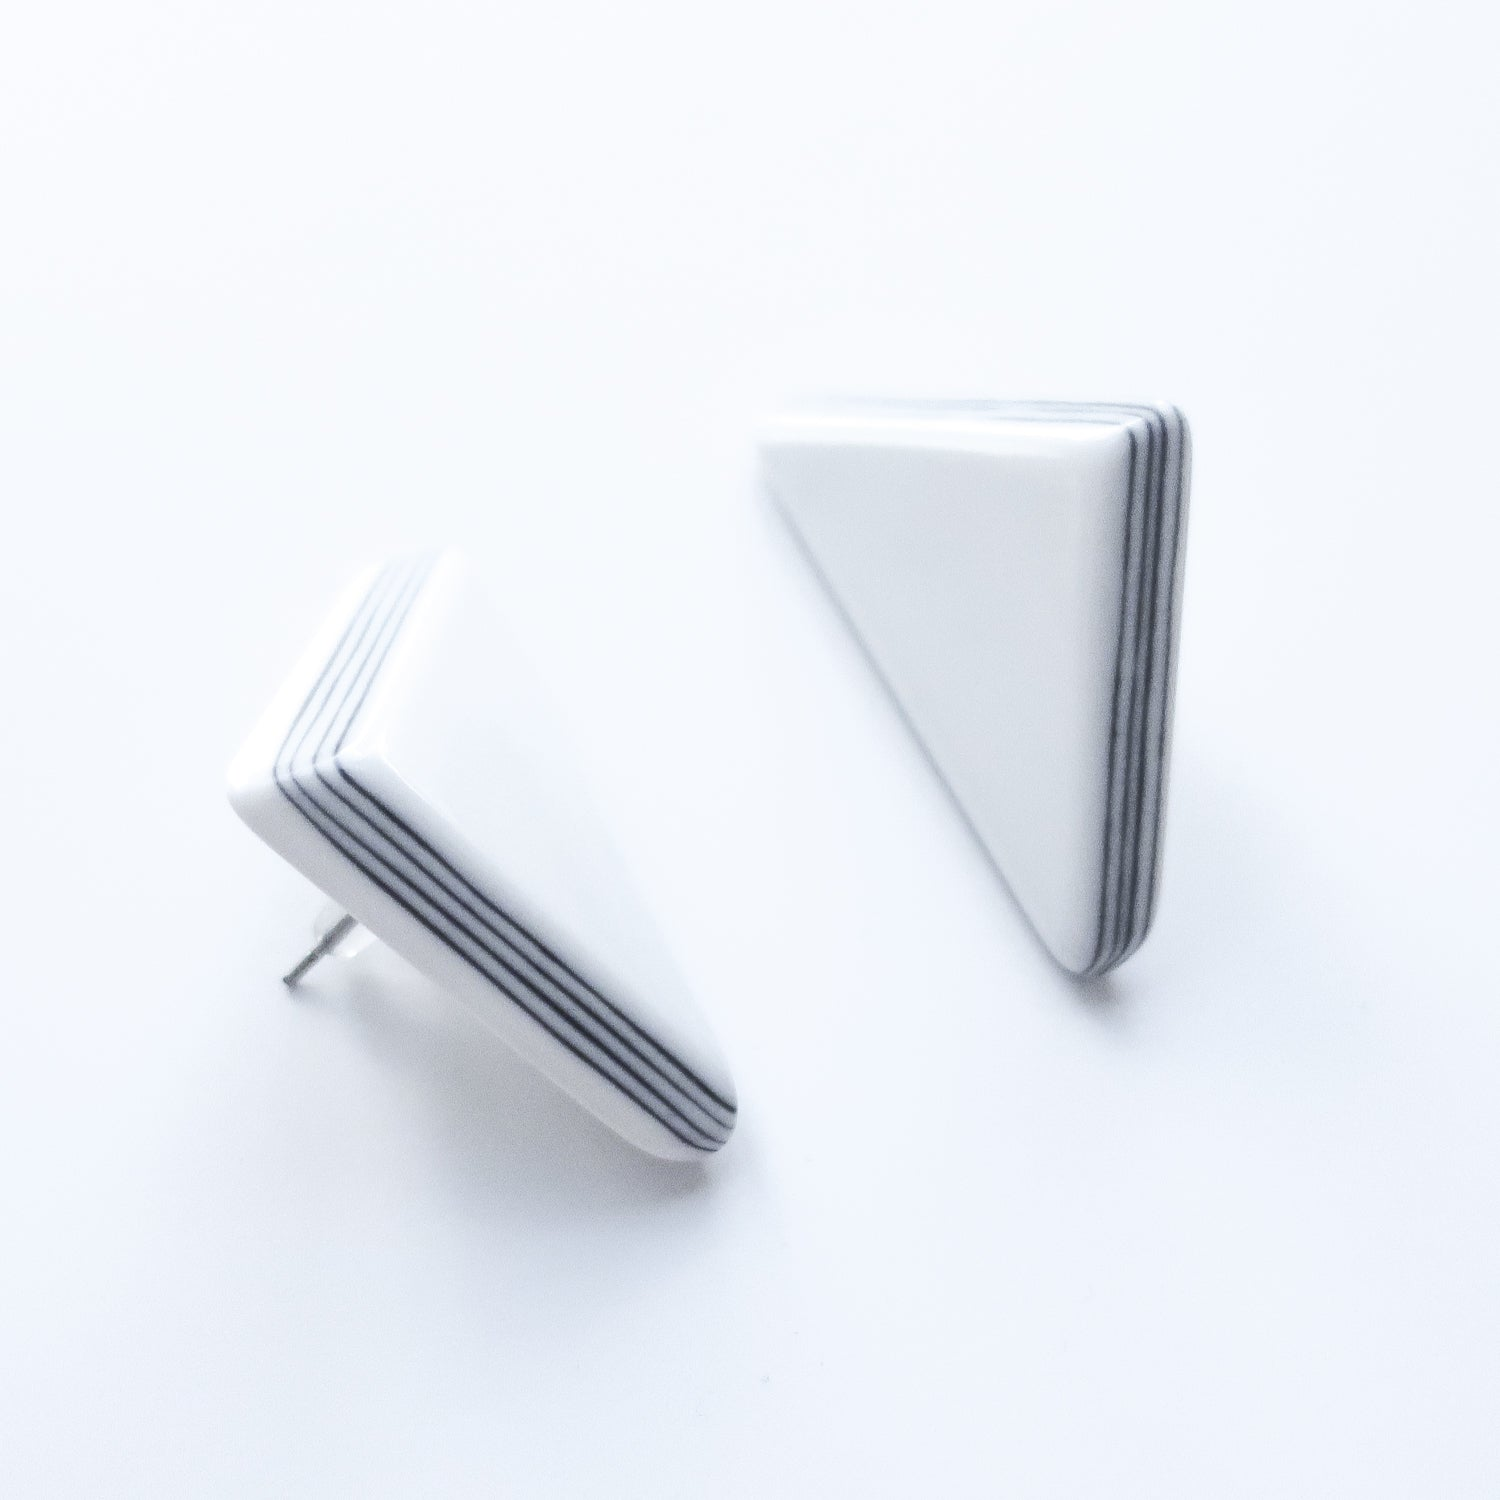 "Second Room Vintage Clothing. Vintage 80s white triangle stud earrings with tiny black stripes on the sides. These earrings are 1"" wide and 1-1/2"" tall. Original earring backs have been replaced with new, clear silicone backings. Free North American shipping on all orders."